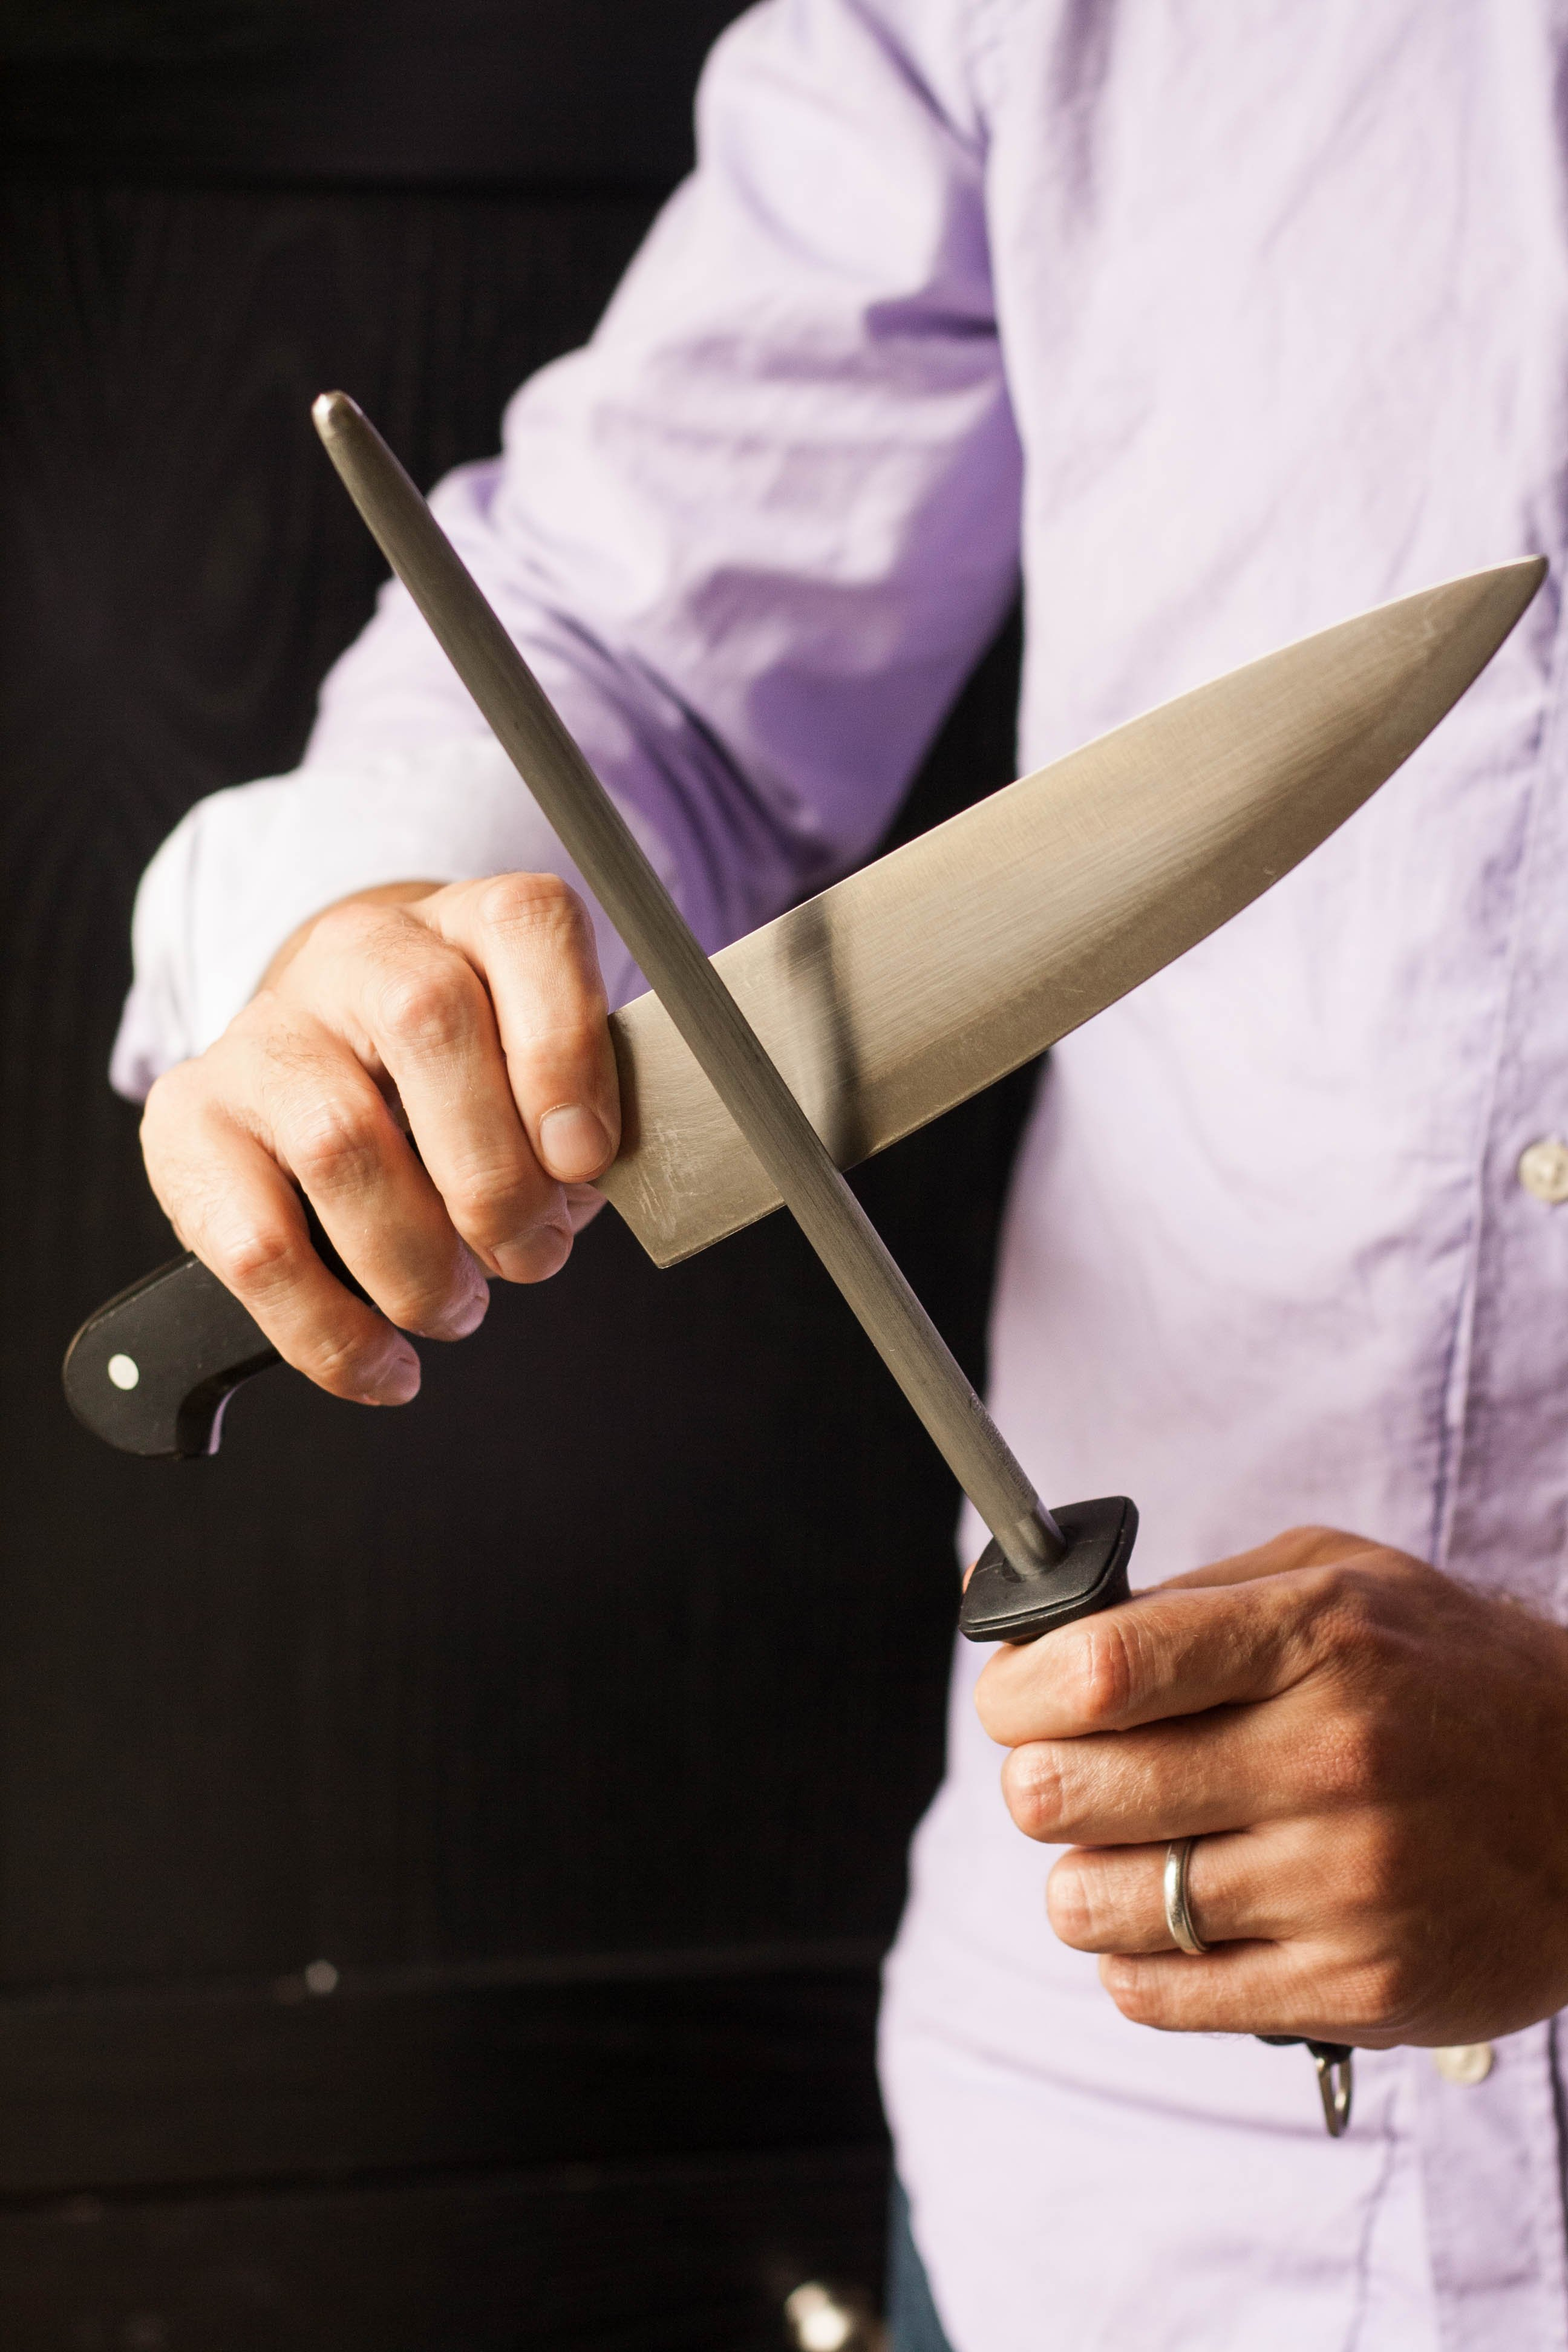 This Tool Does Not Actually Sharpen Your Knife Heres What